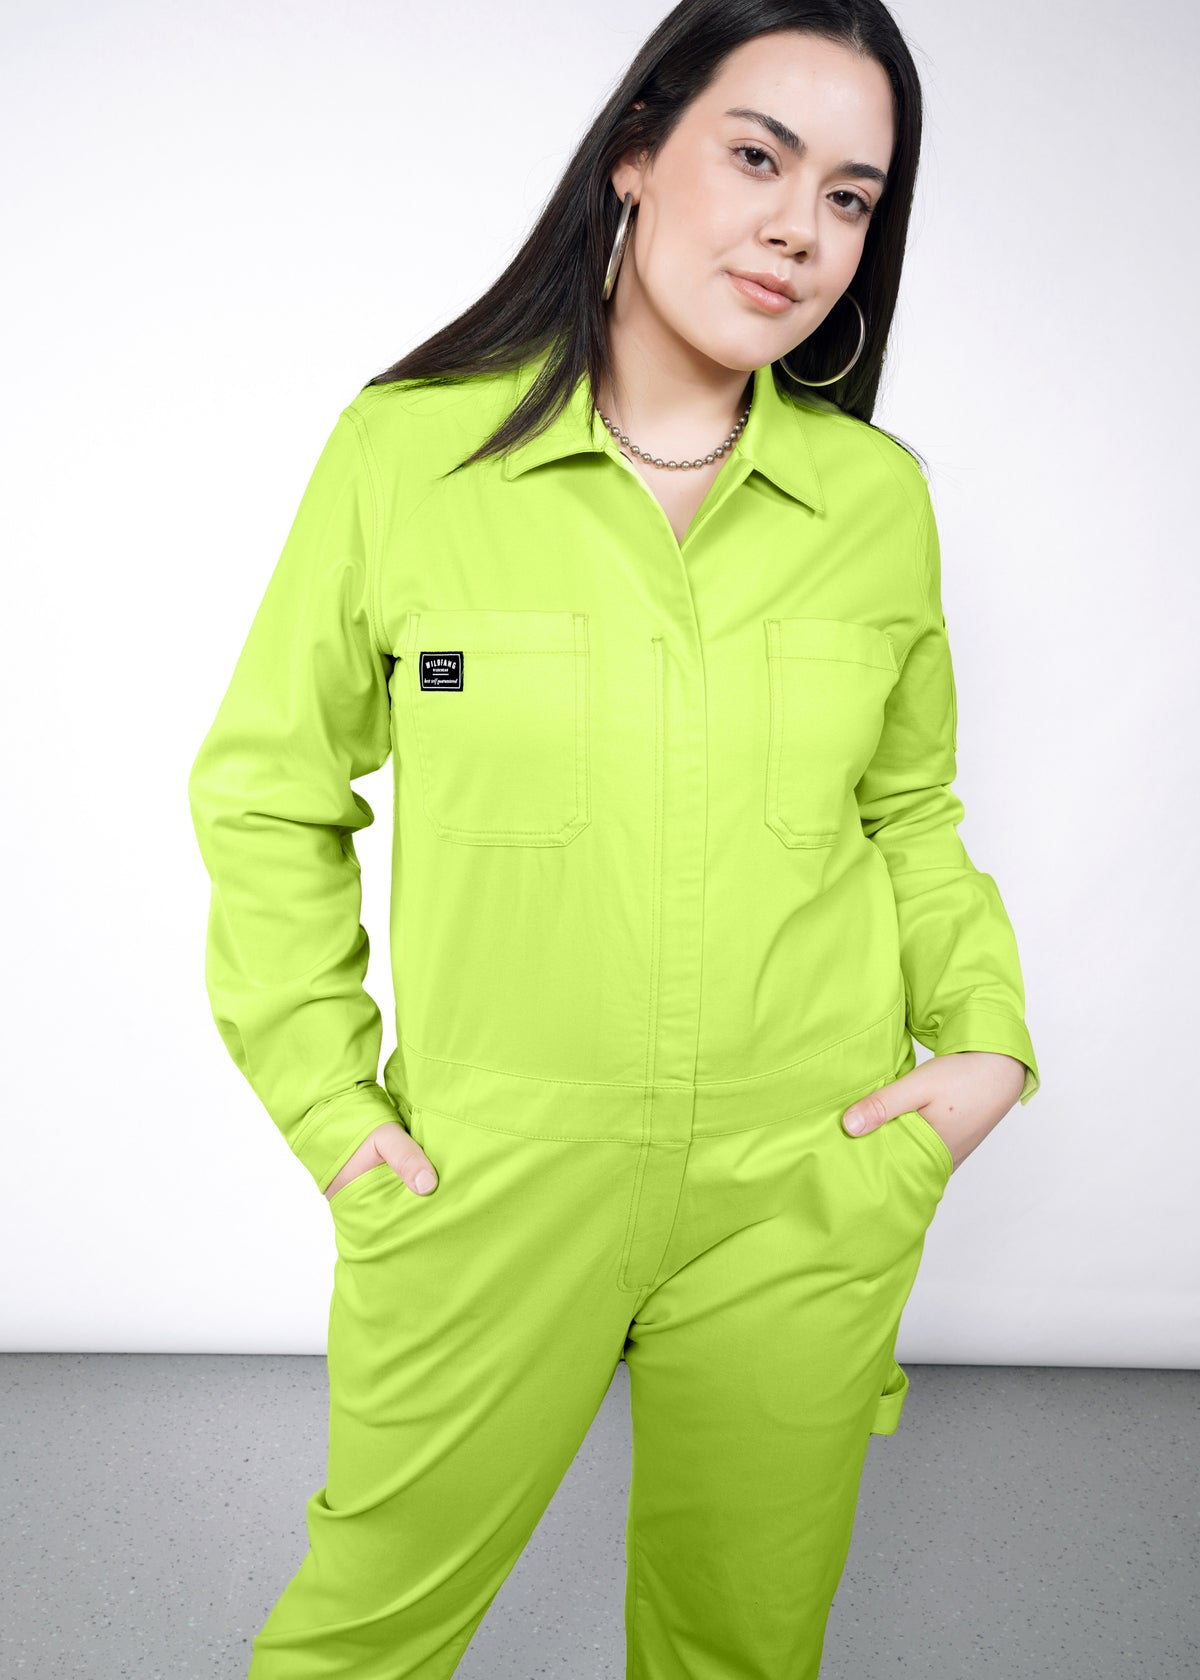 Model wearing neon green long sleeved essential coverall jumpsuit in size large, with hands in pockets